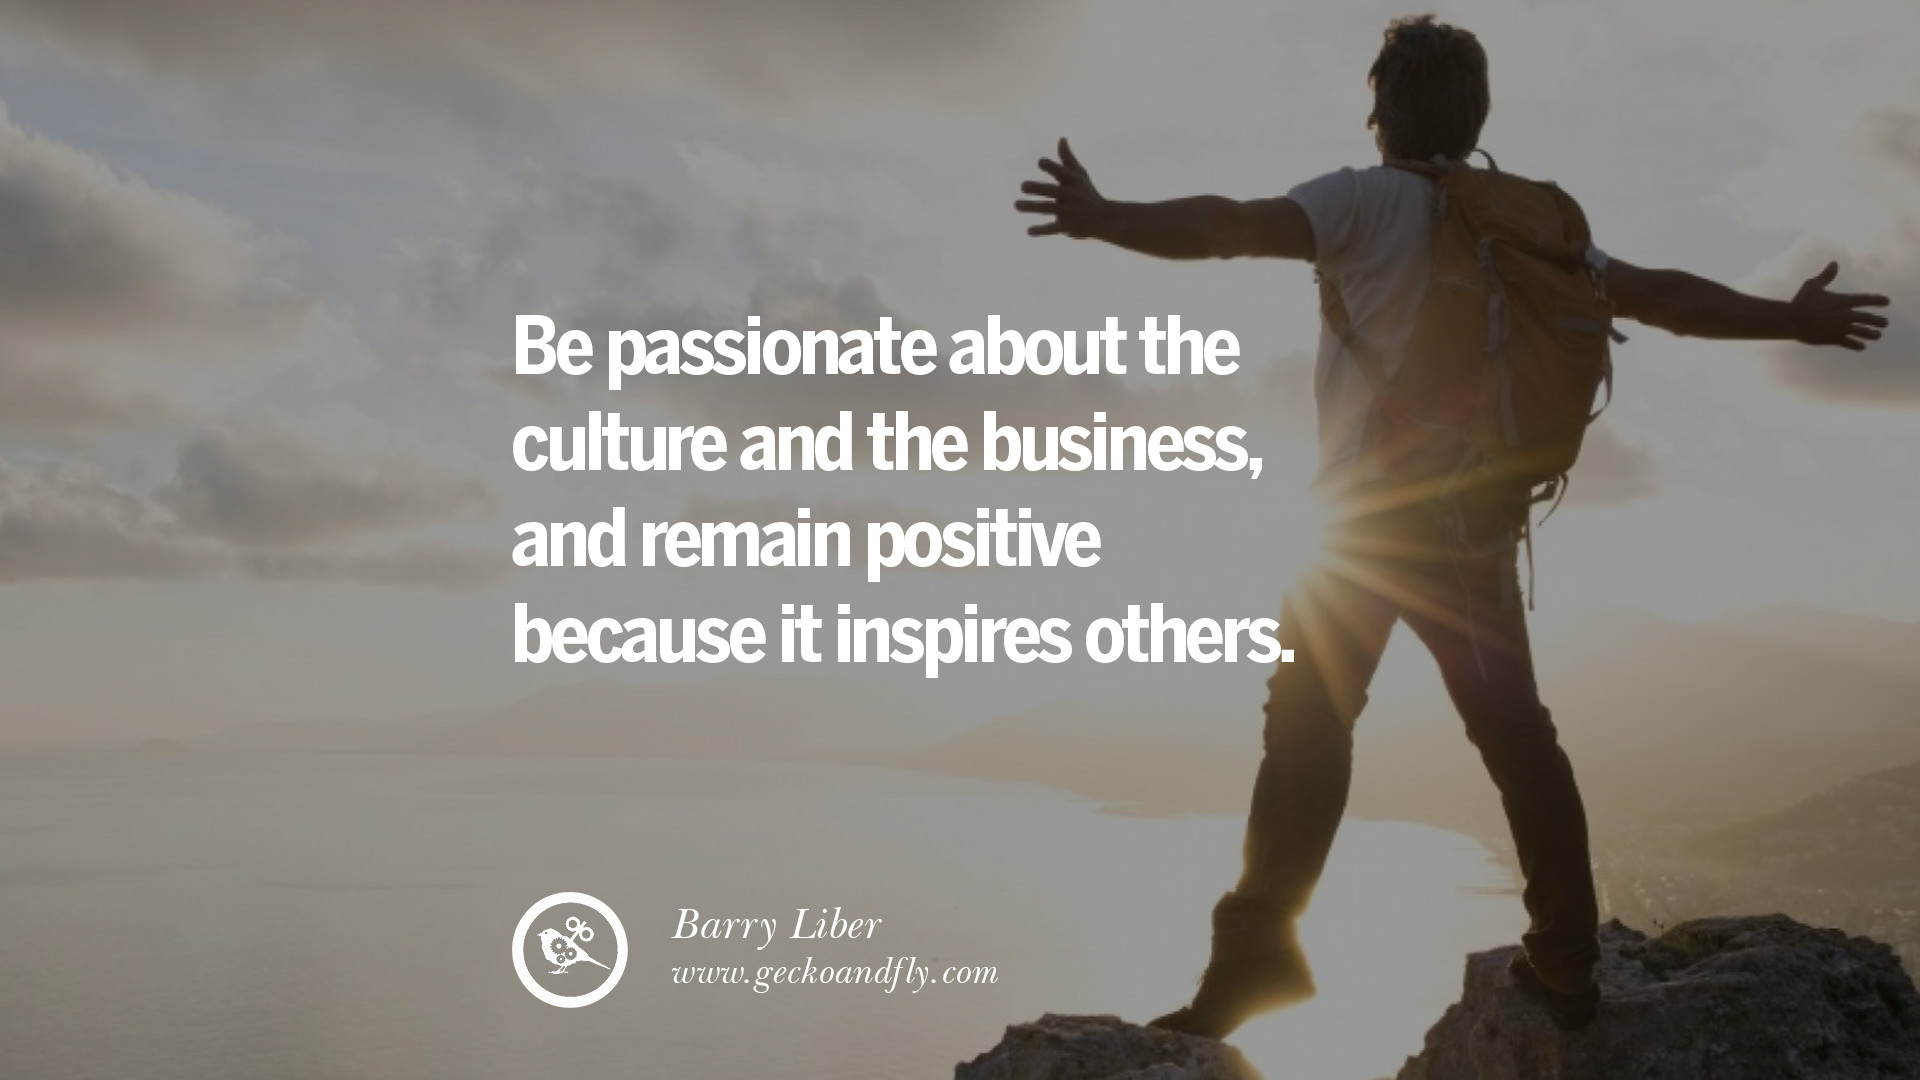 Quotes About Inspiring Others 14 Inspiring & Successful Quotes For Small Medium Business